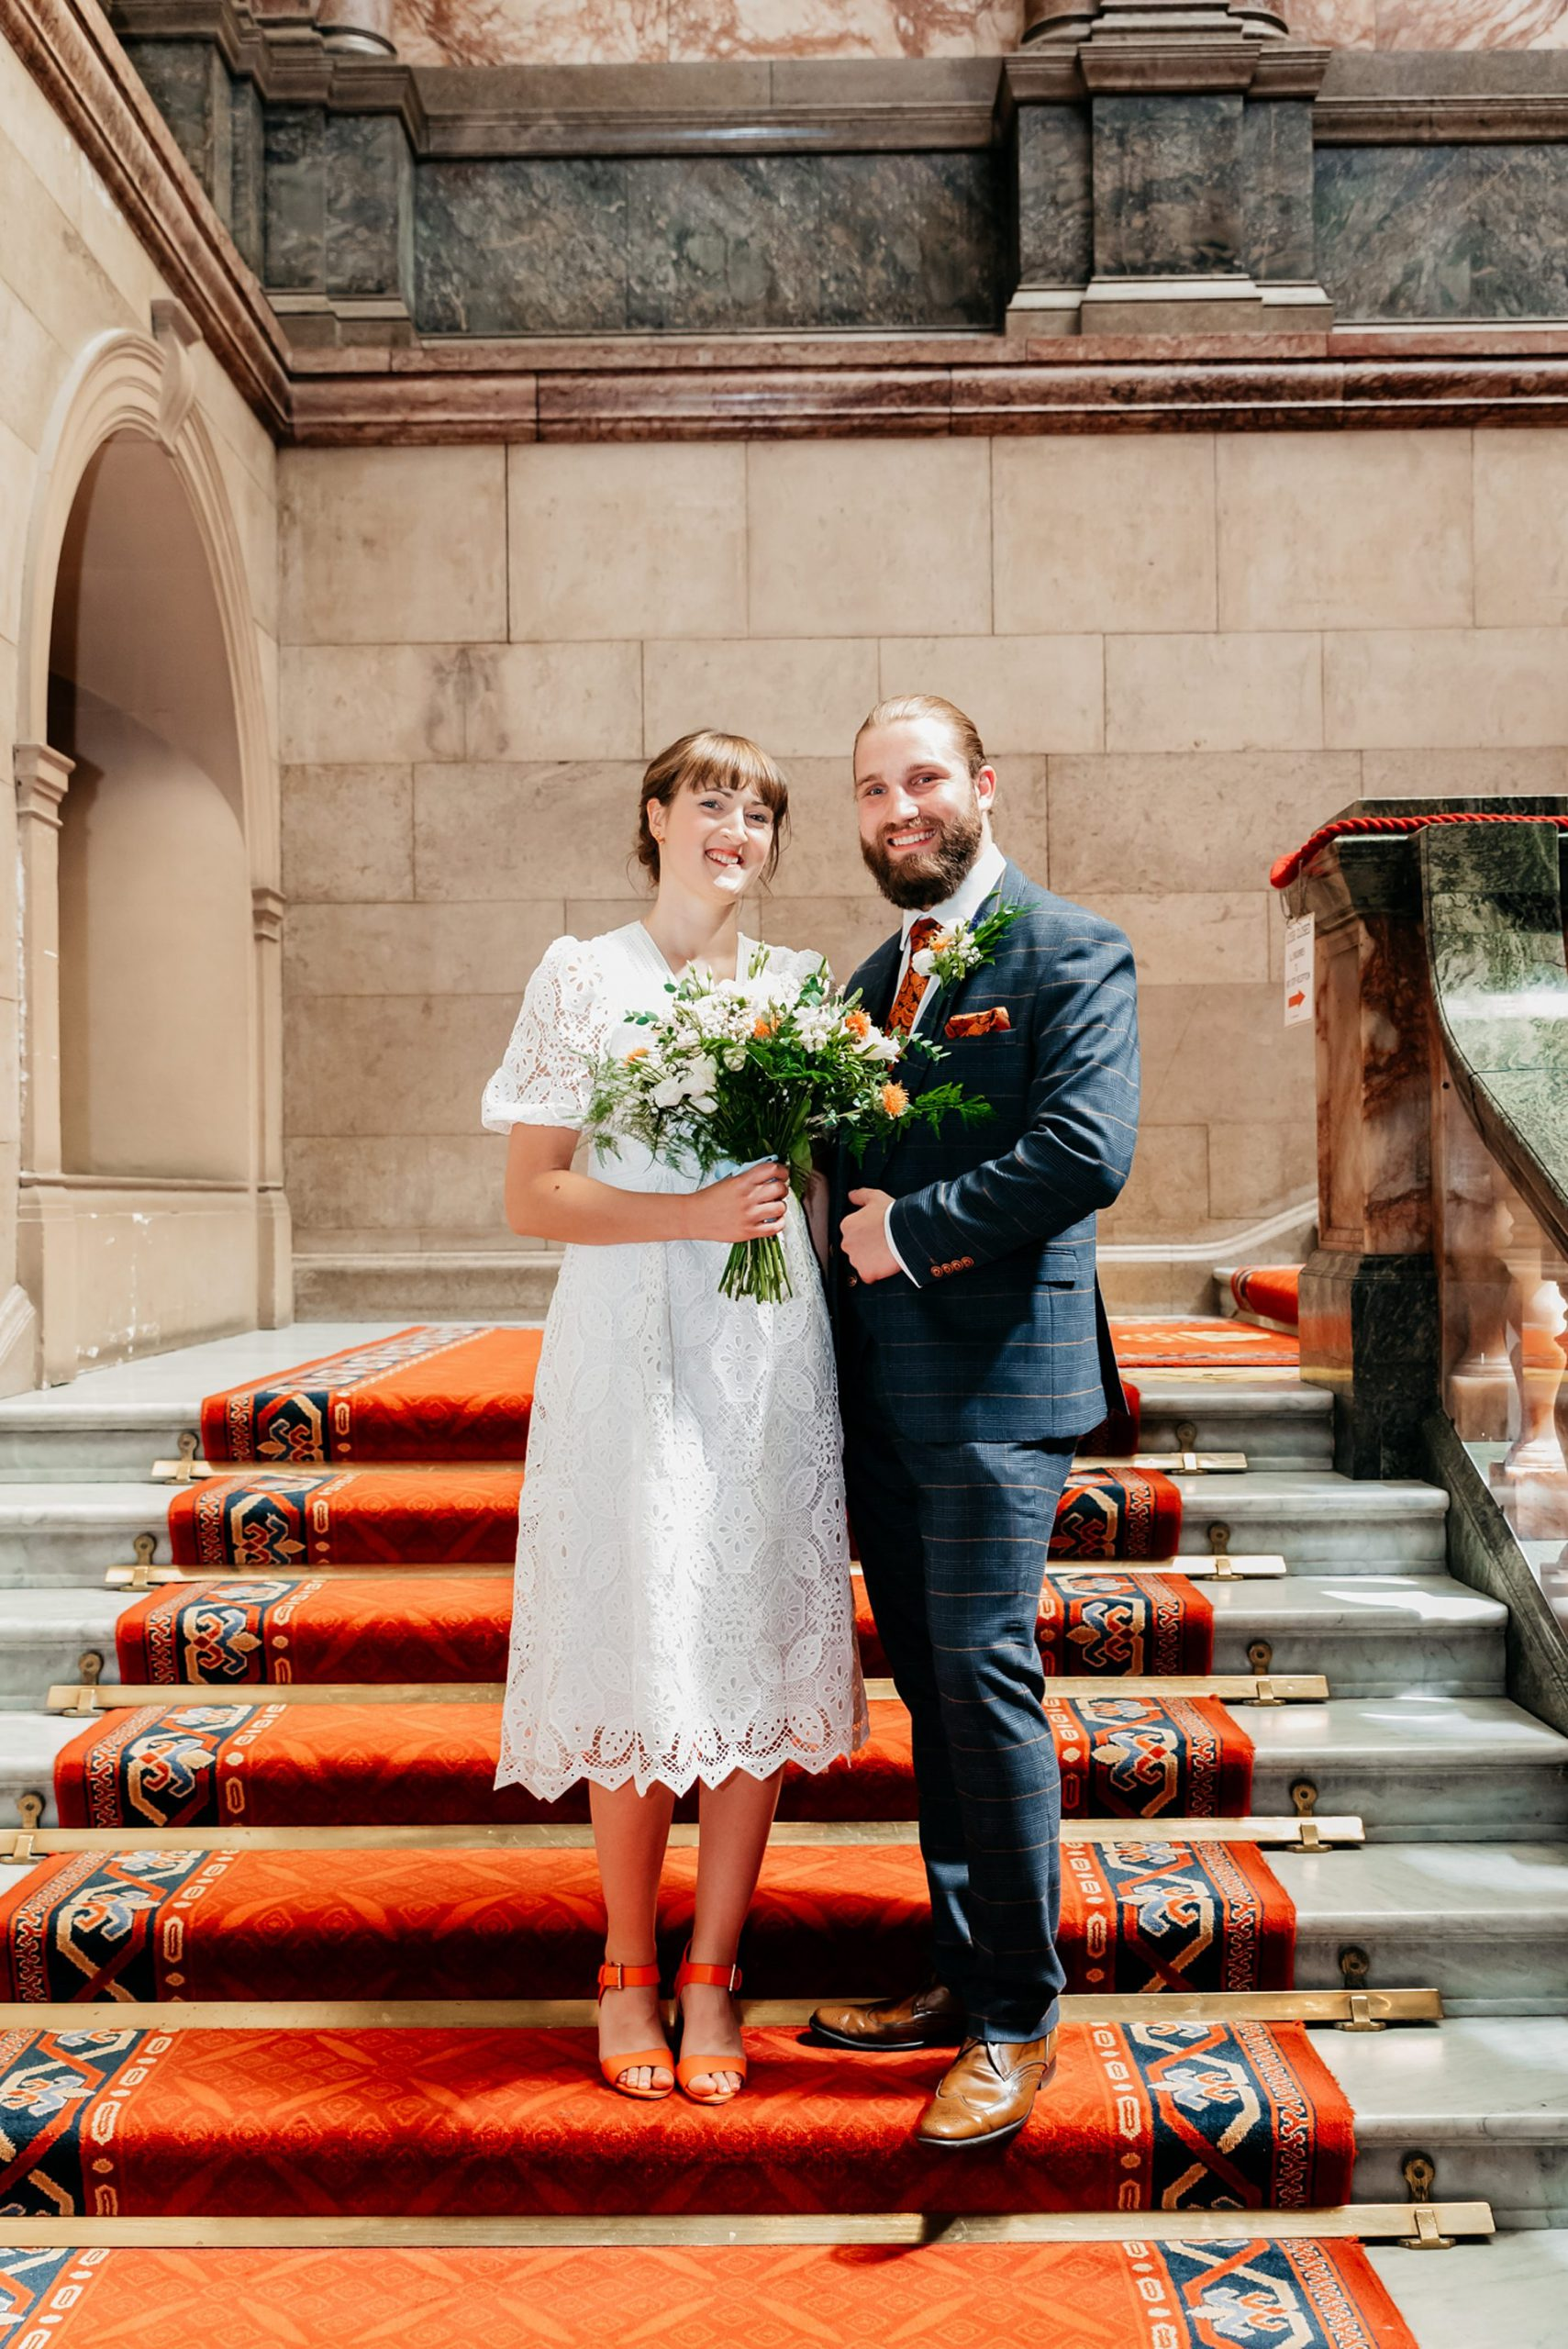 Grand staircase image at Sheffield Town Hall, Bride and Groom pose on steps